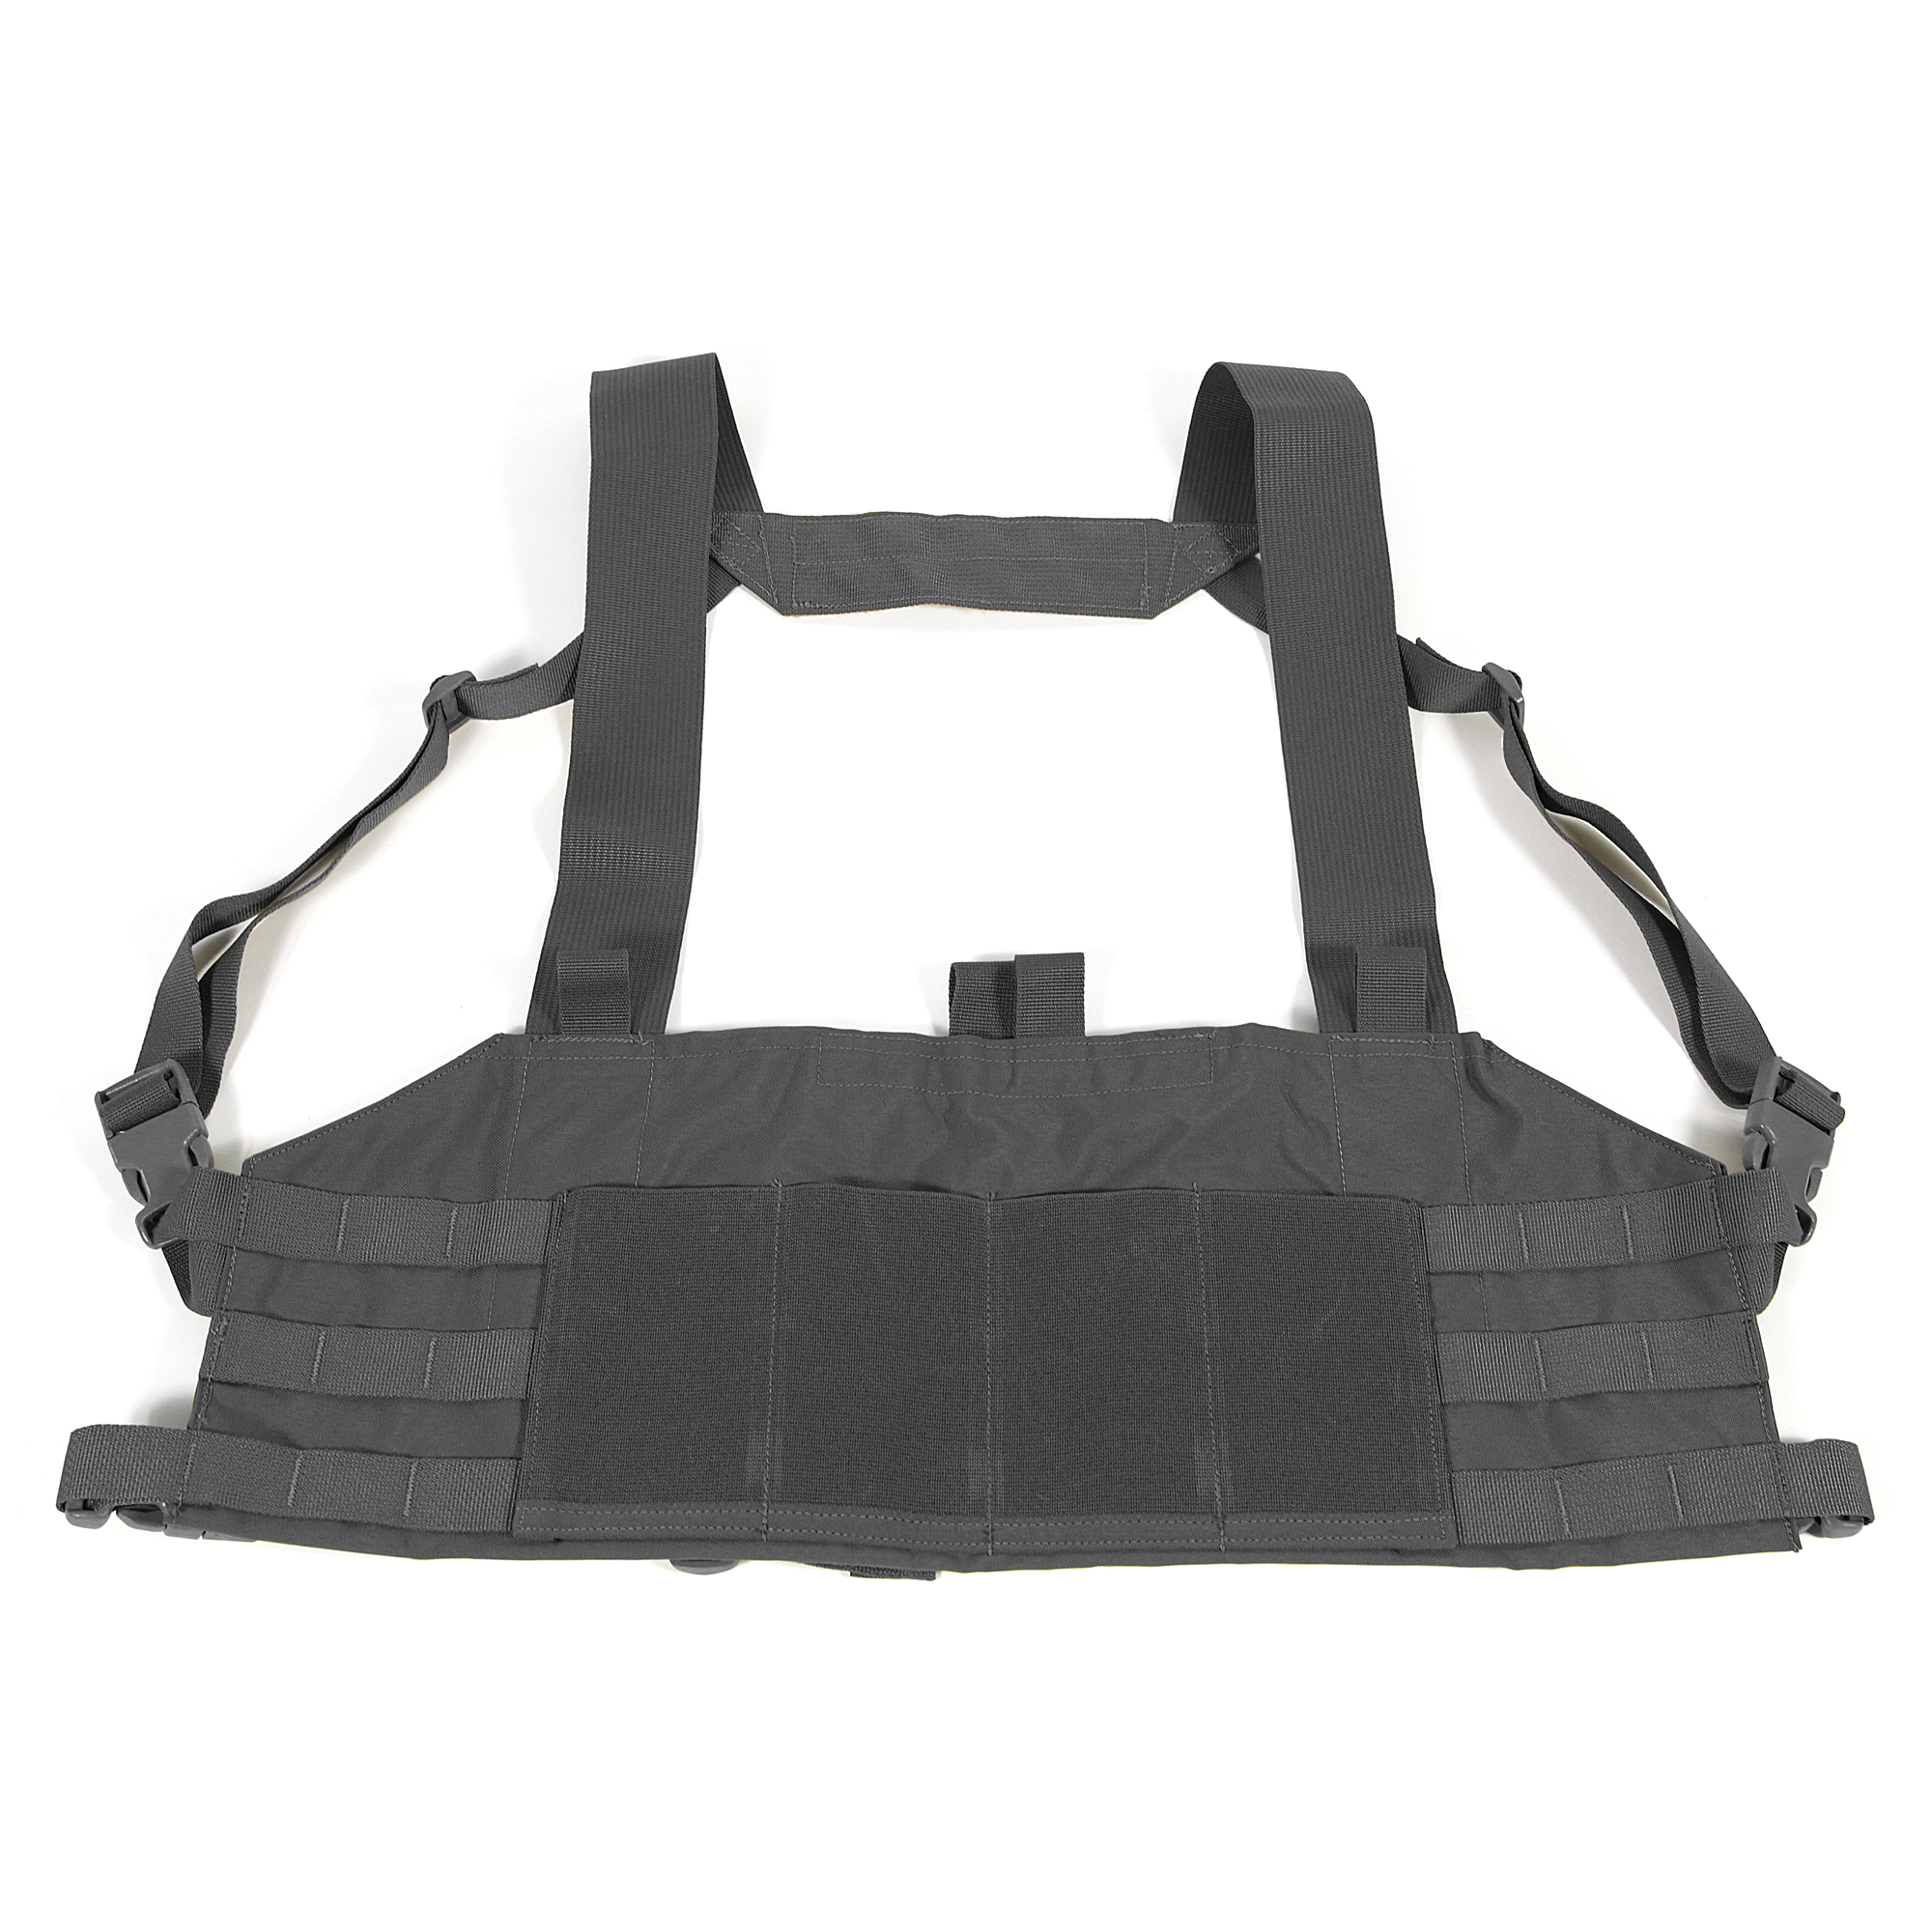 """The Ten-Speed M4 Chest Rig is designed as an ultralight fighting load - holding 4 M4 or similar sized magazines with 3 x 3 MOLLE fields on either side for mounting Trauma Kit NOW!"""" pistol mag pouches"""" utility pouches"""" or any other MOLLE compatible pouches."""